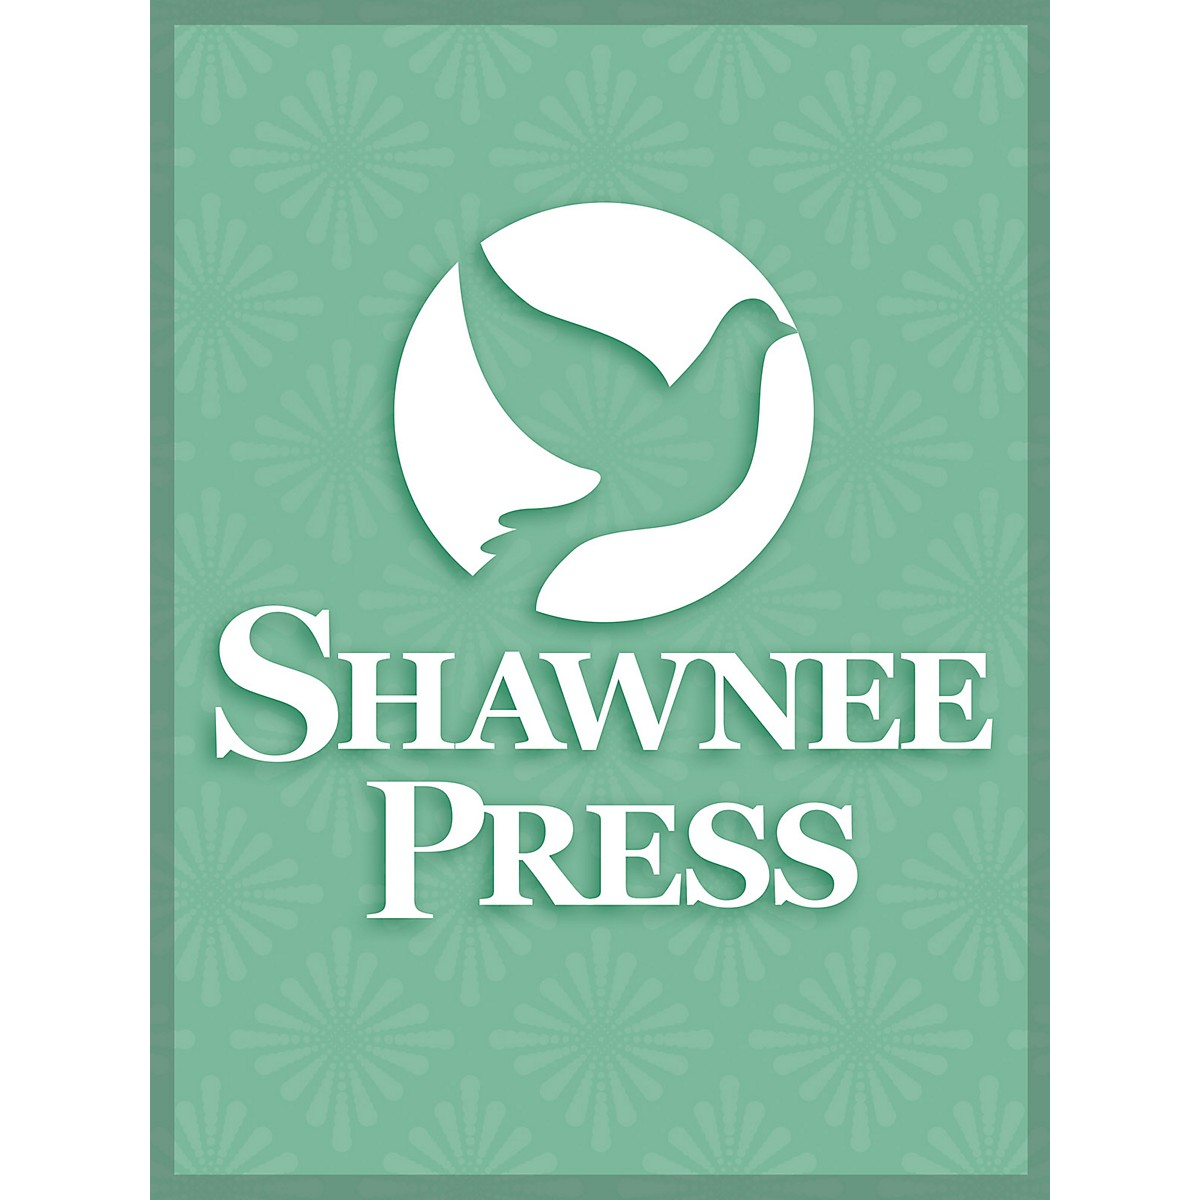 Shawnee Press Suite for Saxophone Quartet Shawnee Press Series